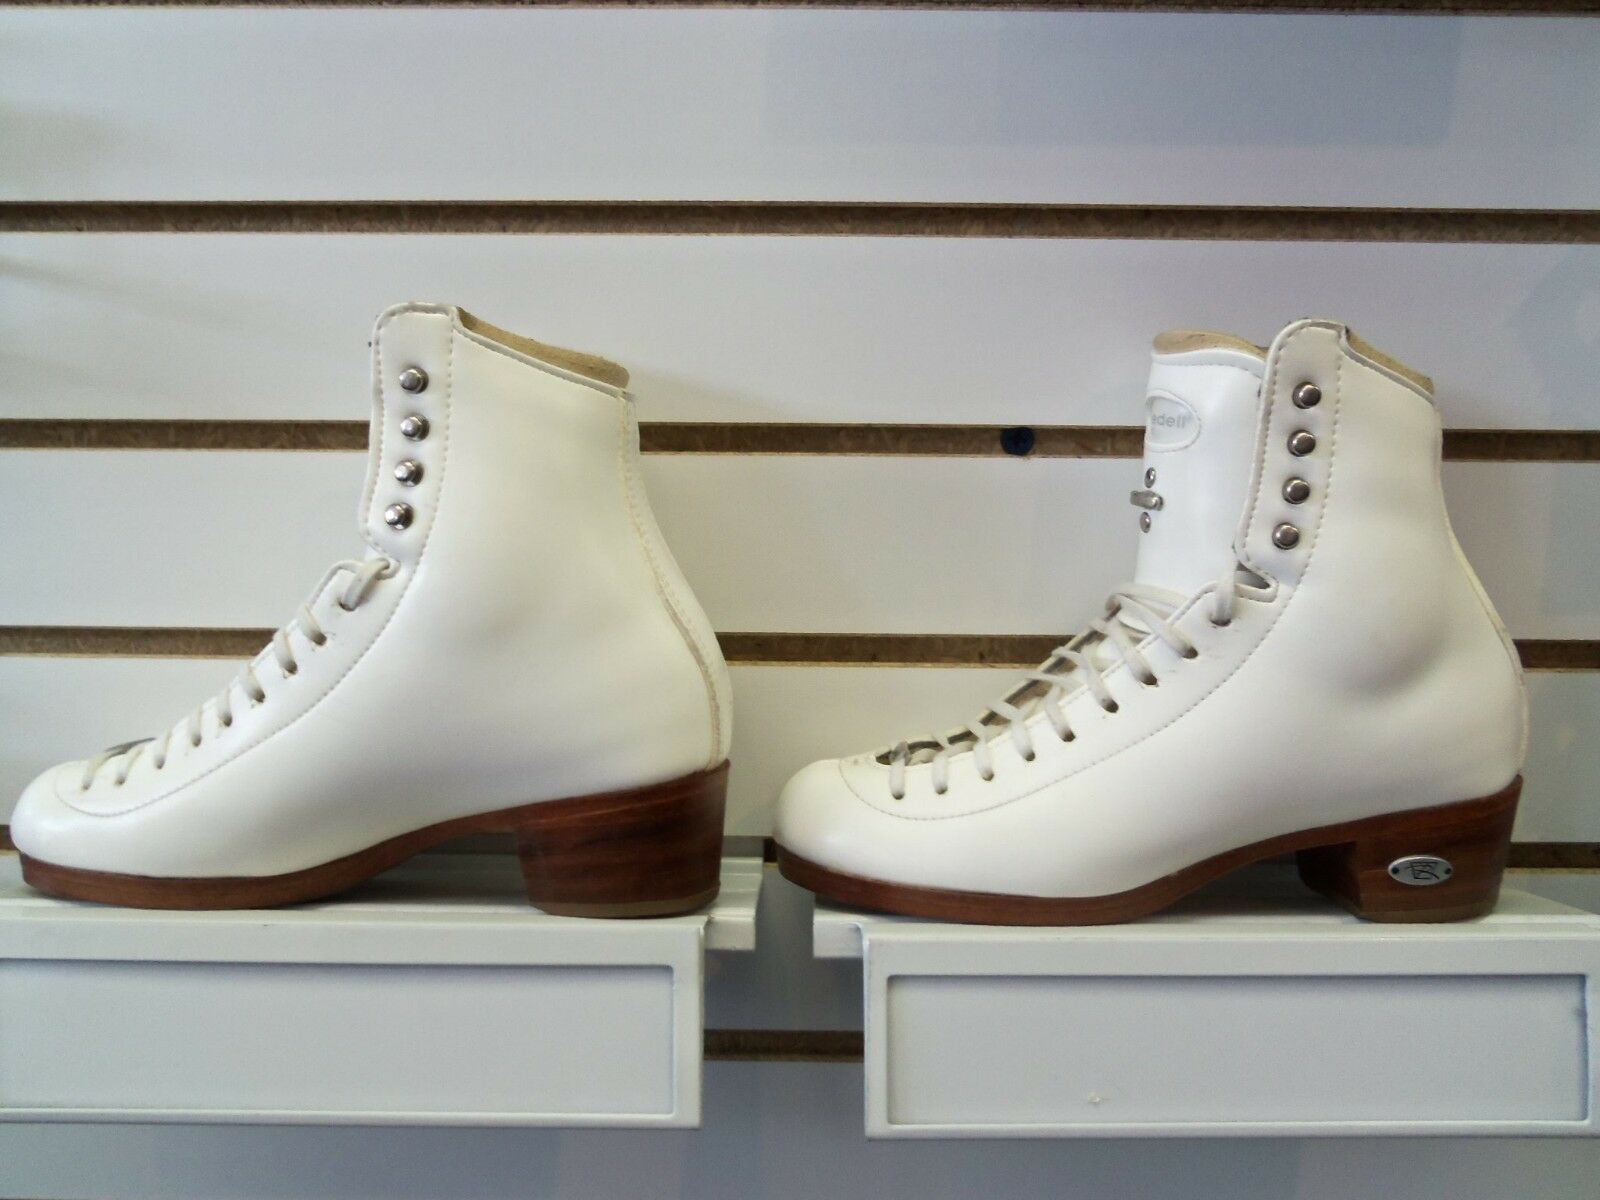 newest 59b8a b66bb Riedell TS Women s 4 AA AAA White Figure Skating Boots